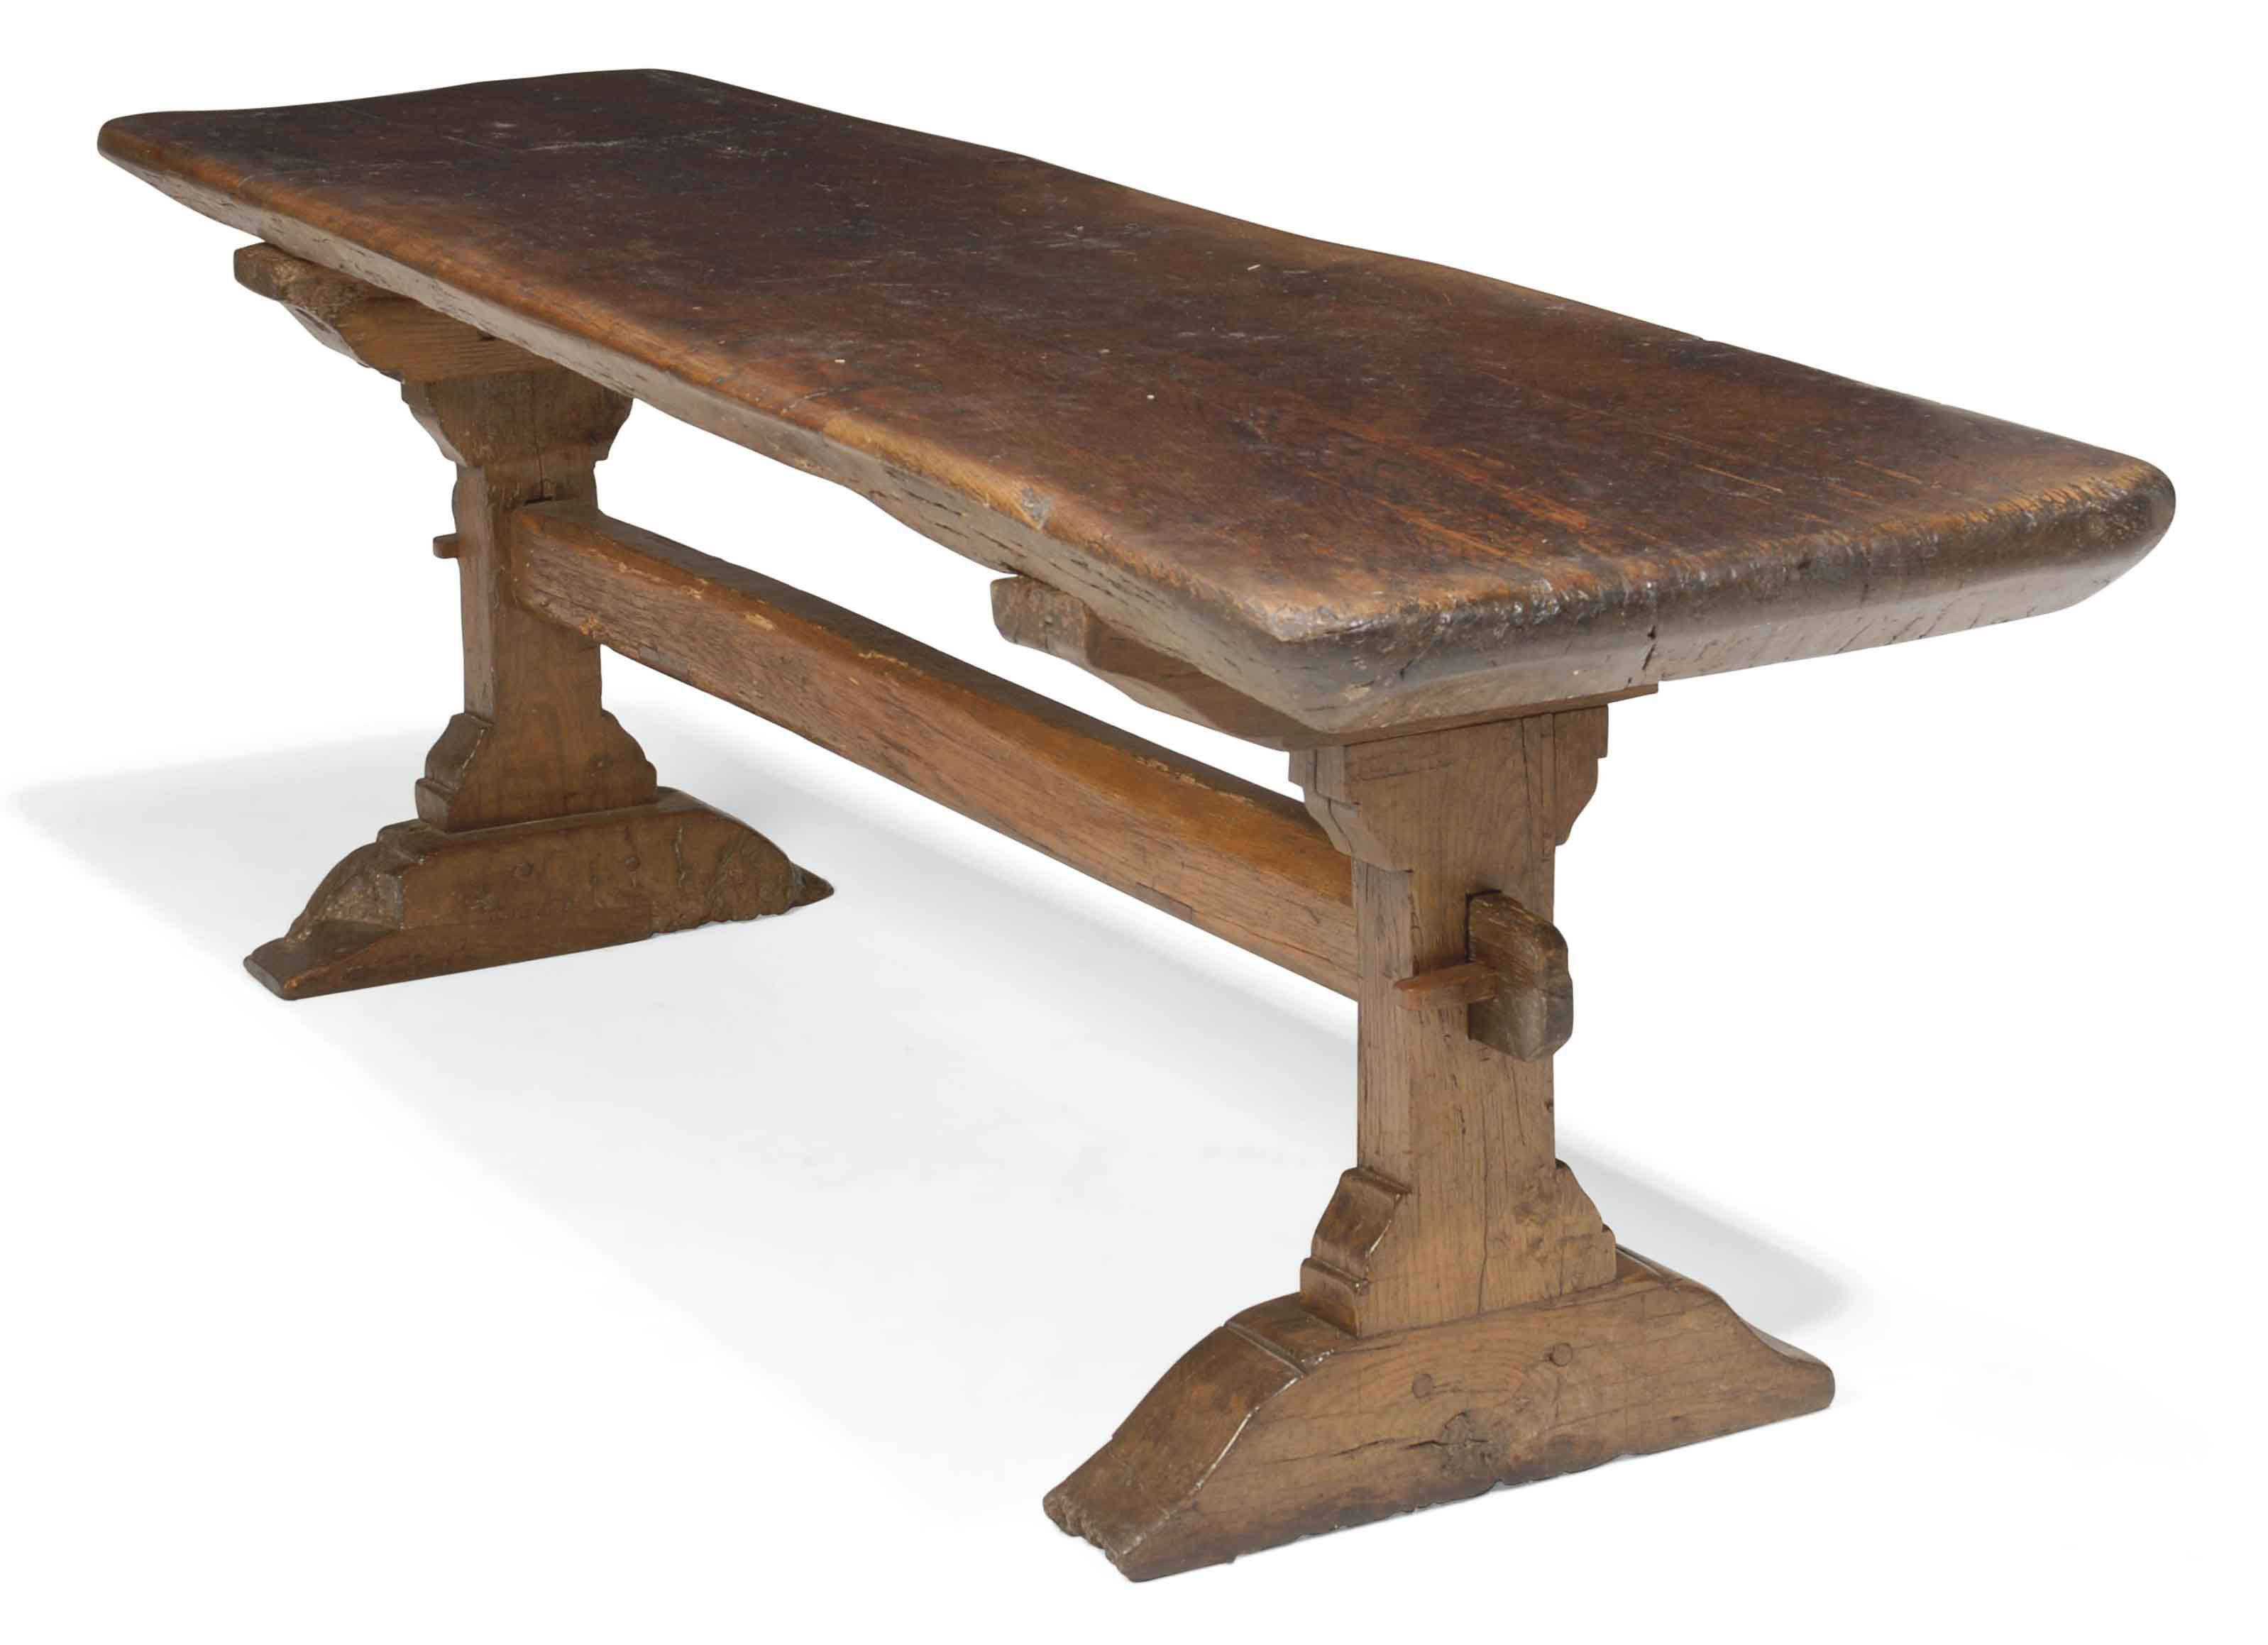 oak wood tables a table spanish dining legs reclaimed and trestle beautiful splayed antique bench